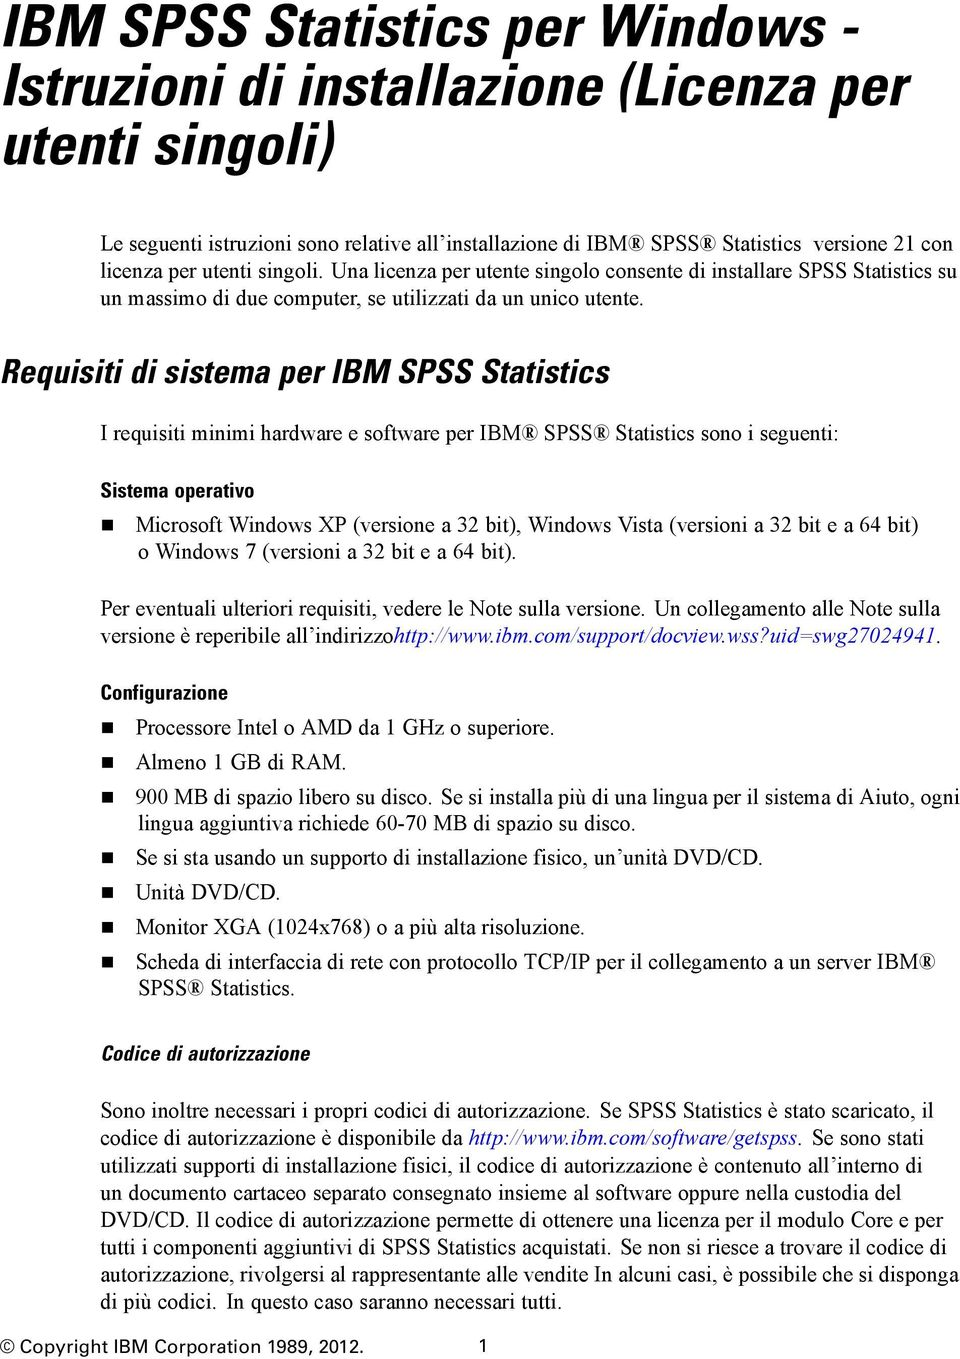 Requisiti di sistema per IBM SPSS Statistics I requisiti minimi hardware e software per IBM SPSS Statistics sono i seguenti: Sistema operativo Microsoft Windows XP (versione a 32 bit), Windows Vista